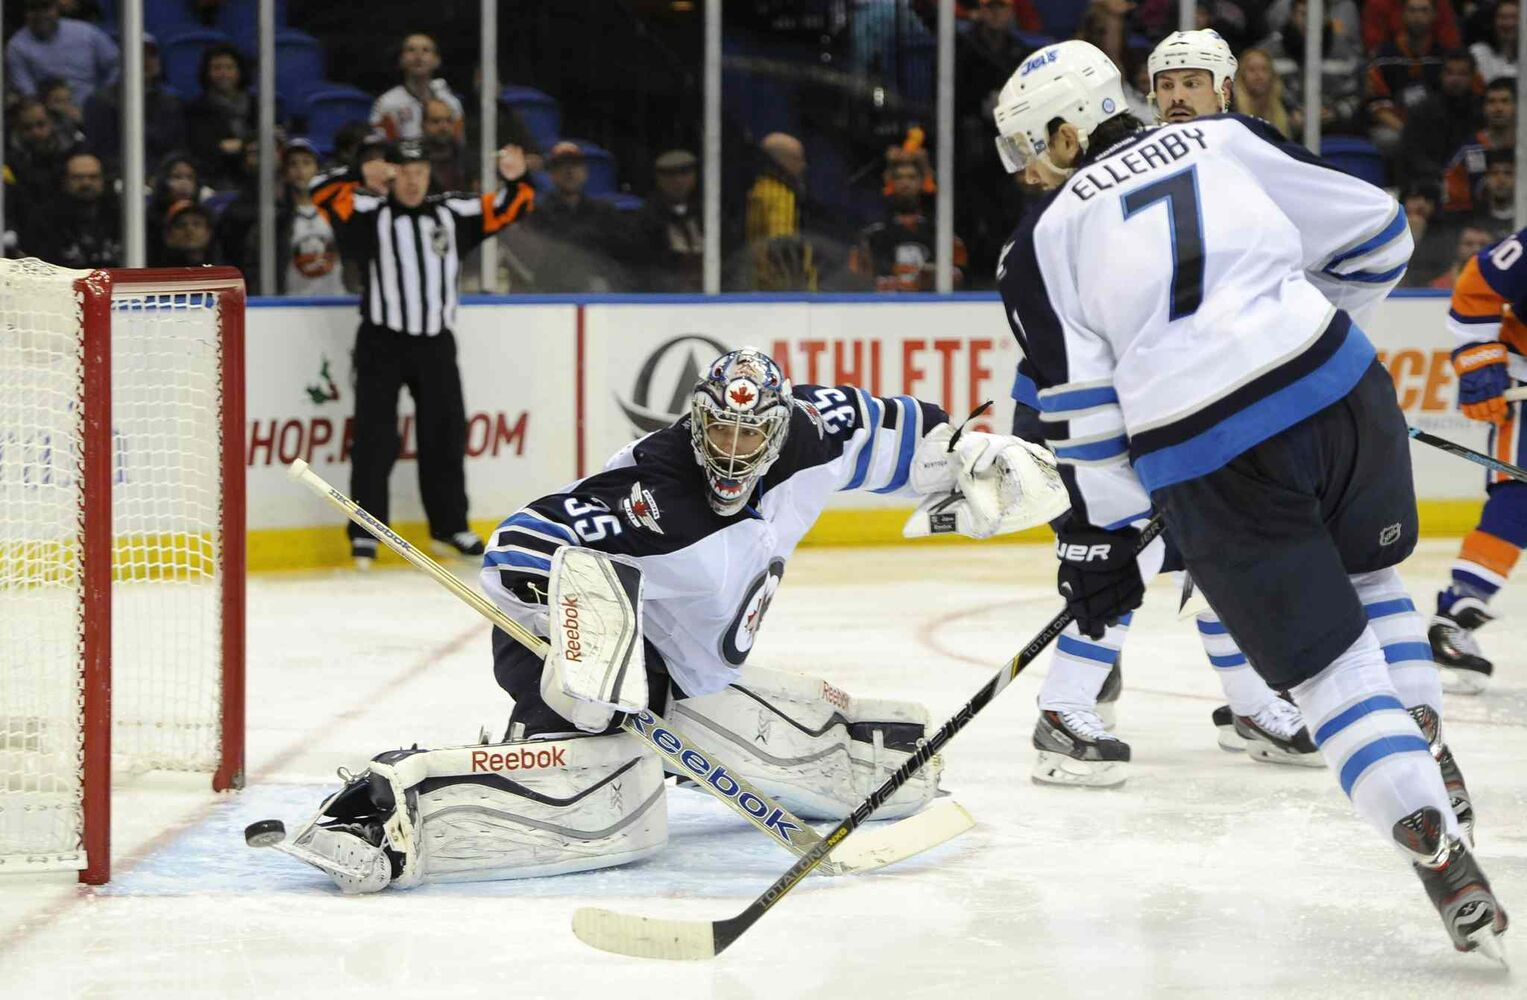 Winnipeg Jets goalie Al Montoya (left) kicks the puck away from the goal as defenceman Keaton Ellerby watches during  the second period. (Kath Kmonicek / The Associated Press)